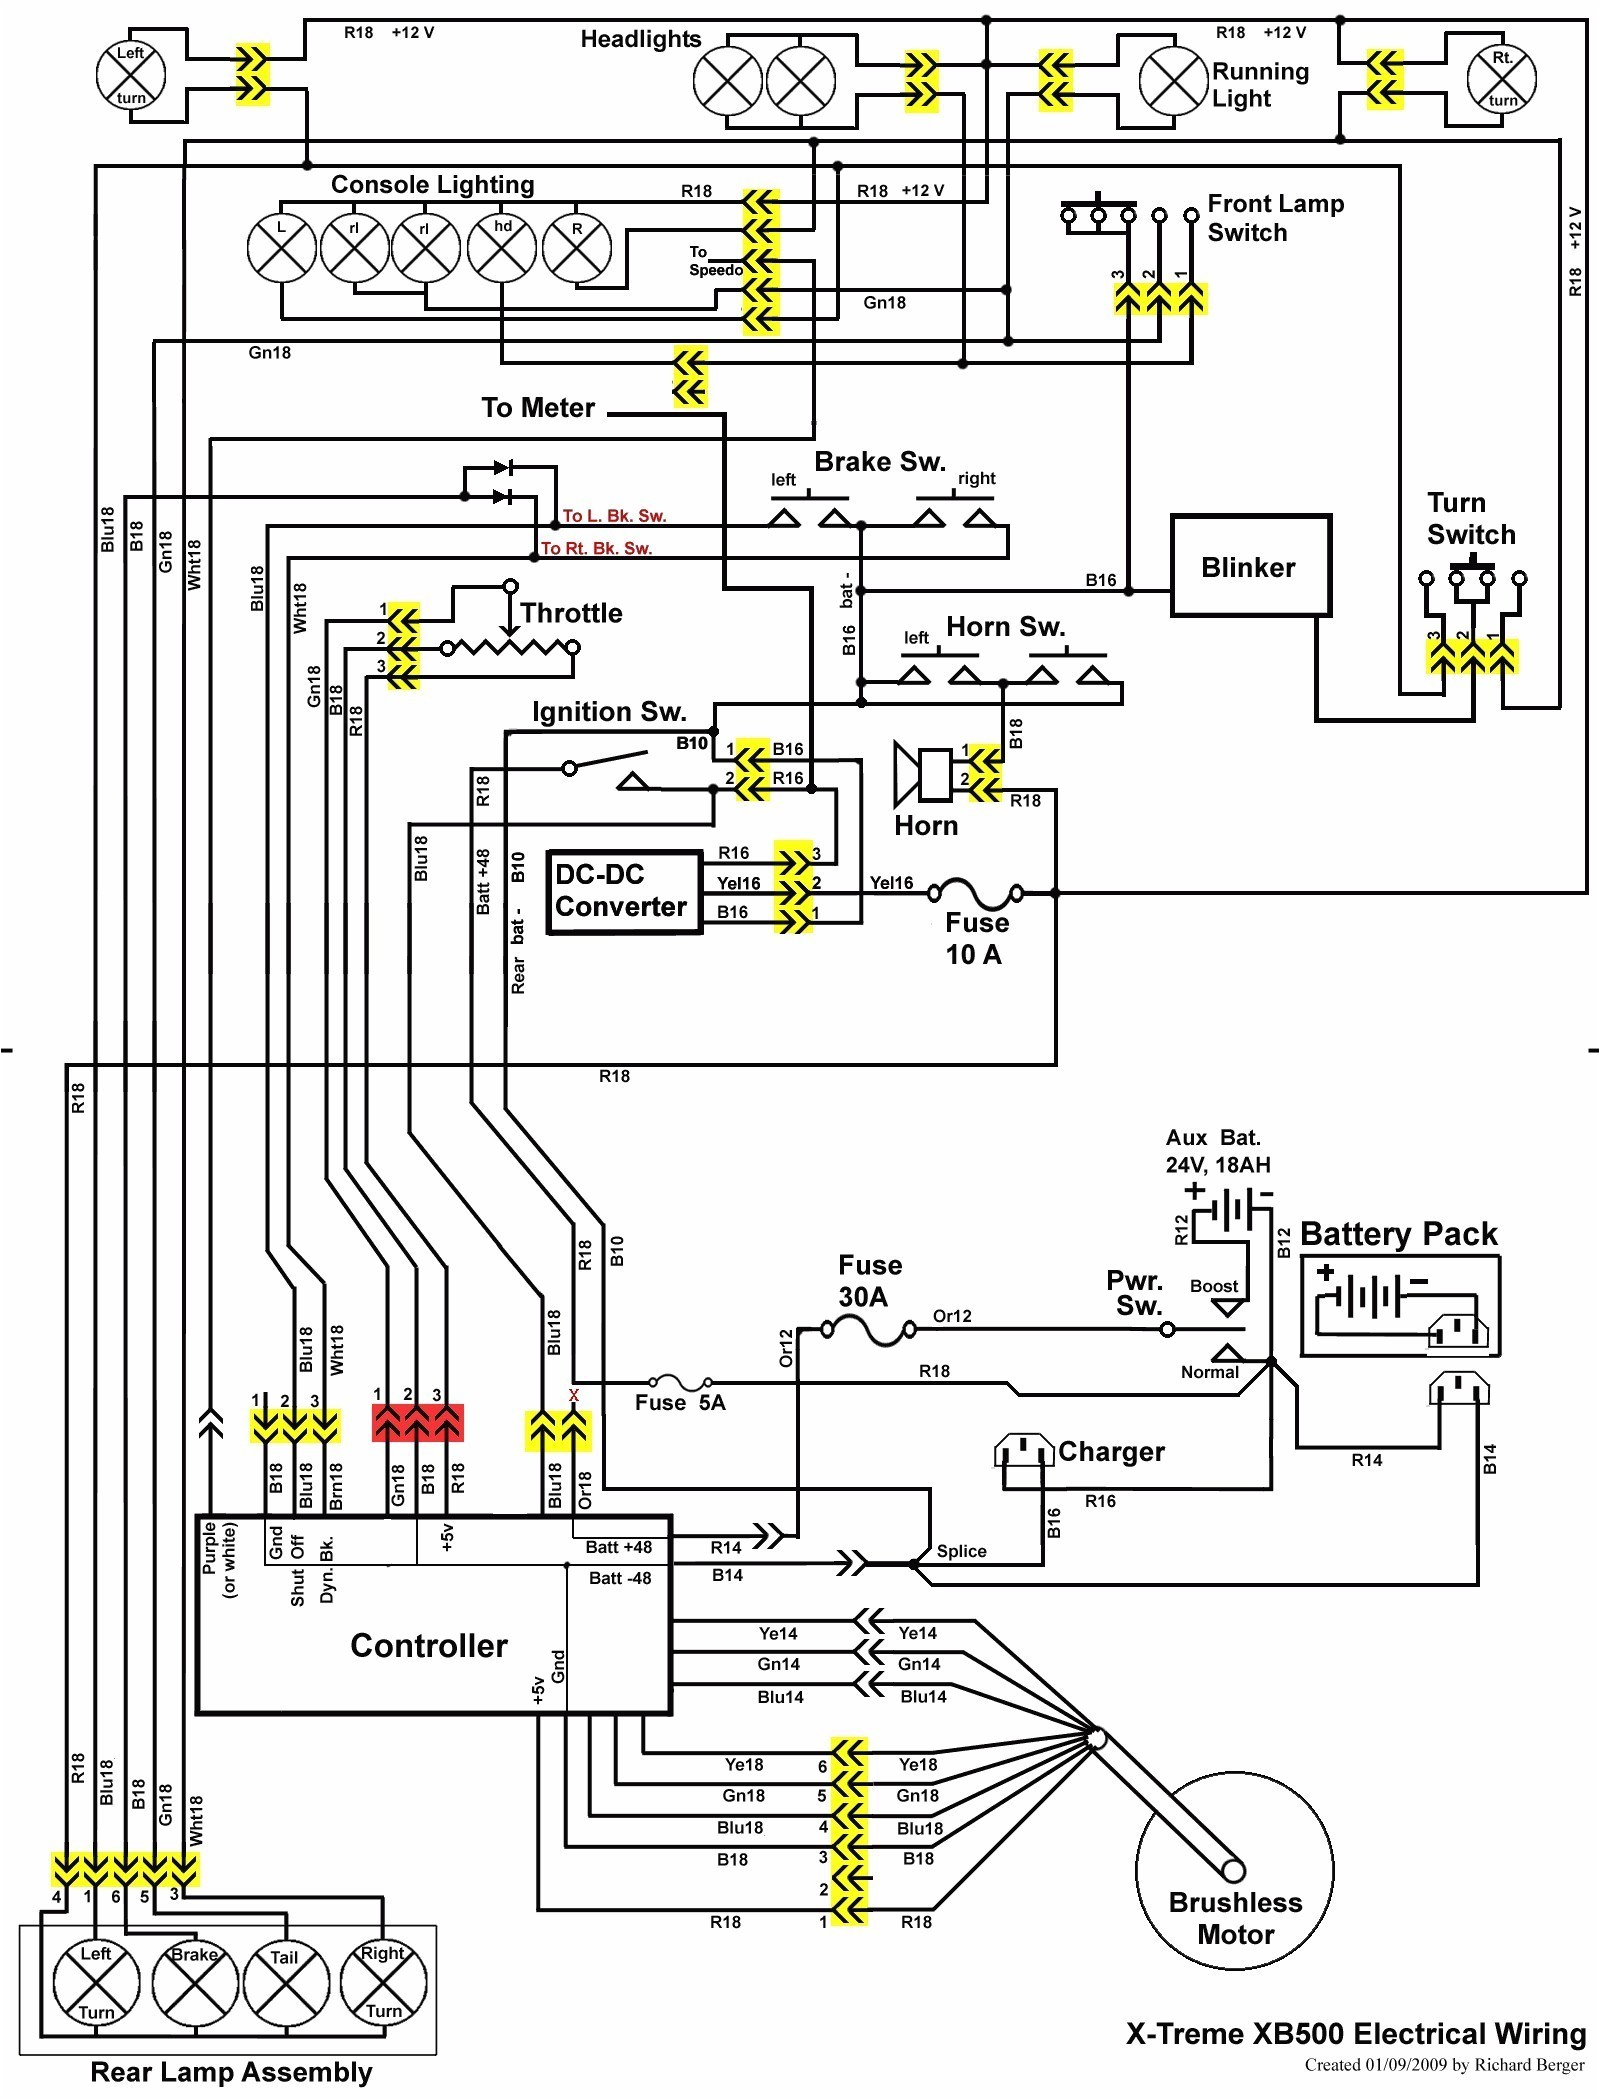 nice wiring diagram for electric scooter e200 razor scooter wiring diagram 9 19 kenmo lp de u2022e200 razor scooter wiring diagram jpg